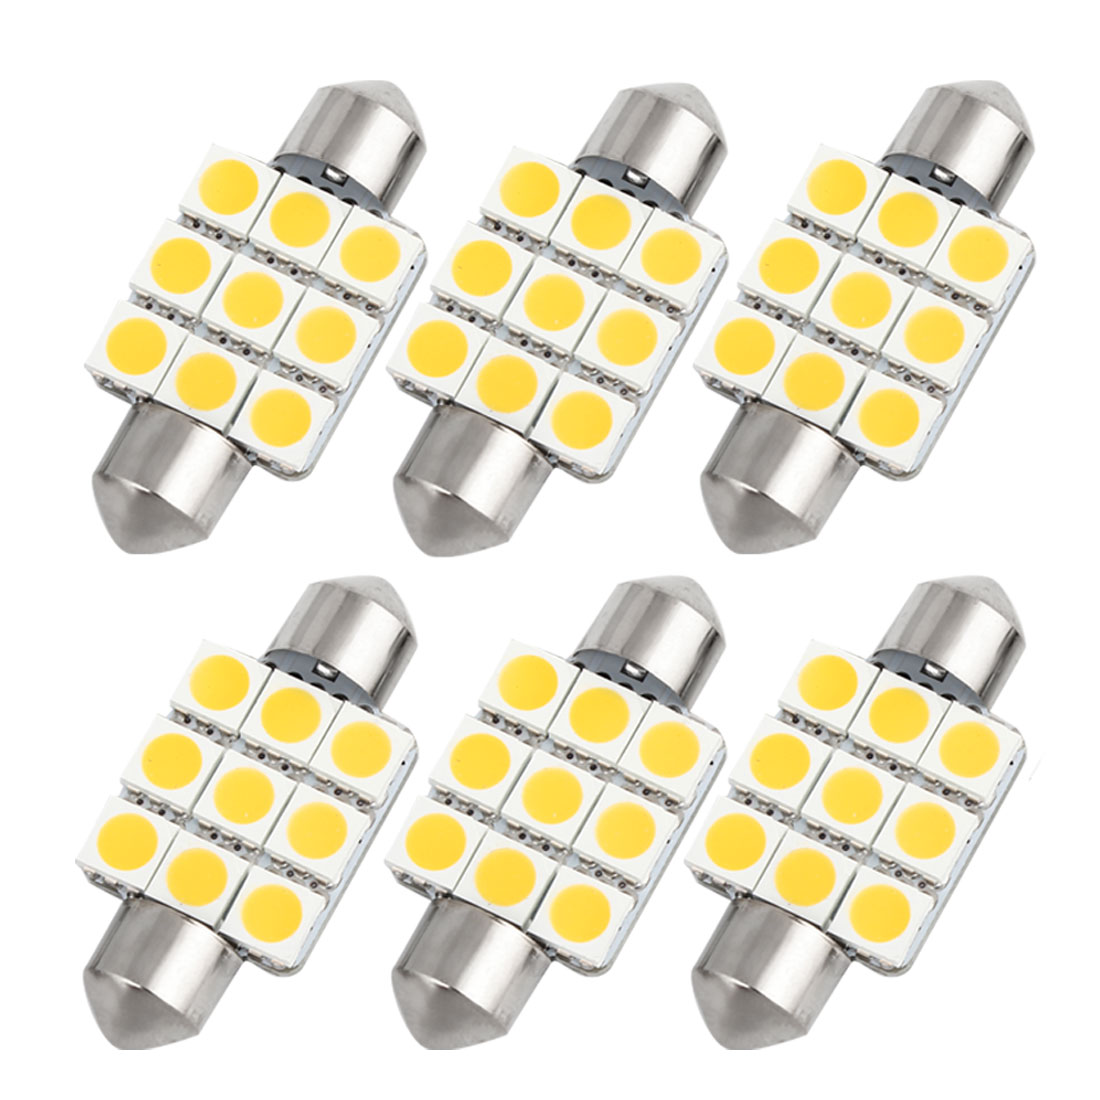 6pcs 36mm Warm White 9 LED 5050 SMD Festoon Dome Light Lamp DC 12V 6418 6413 Internal